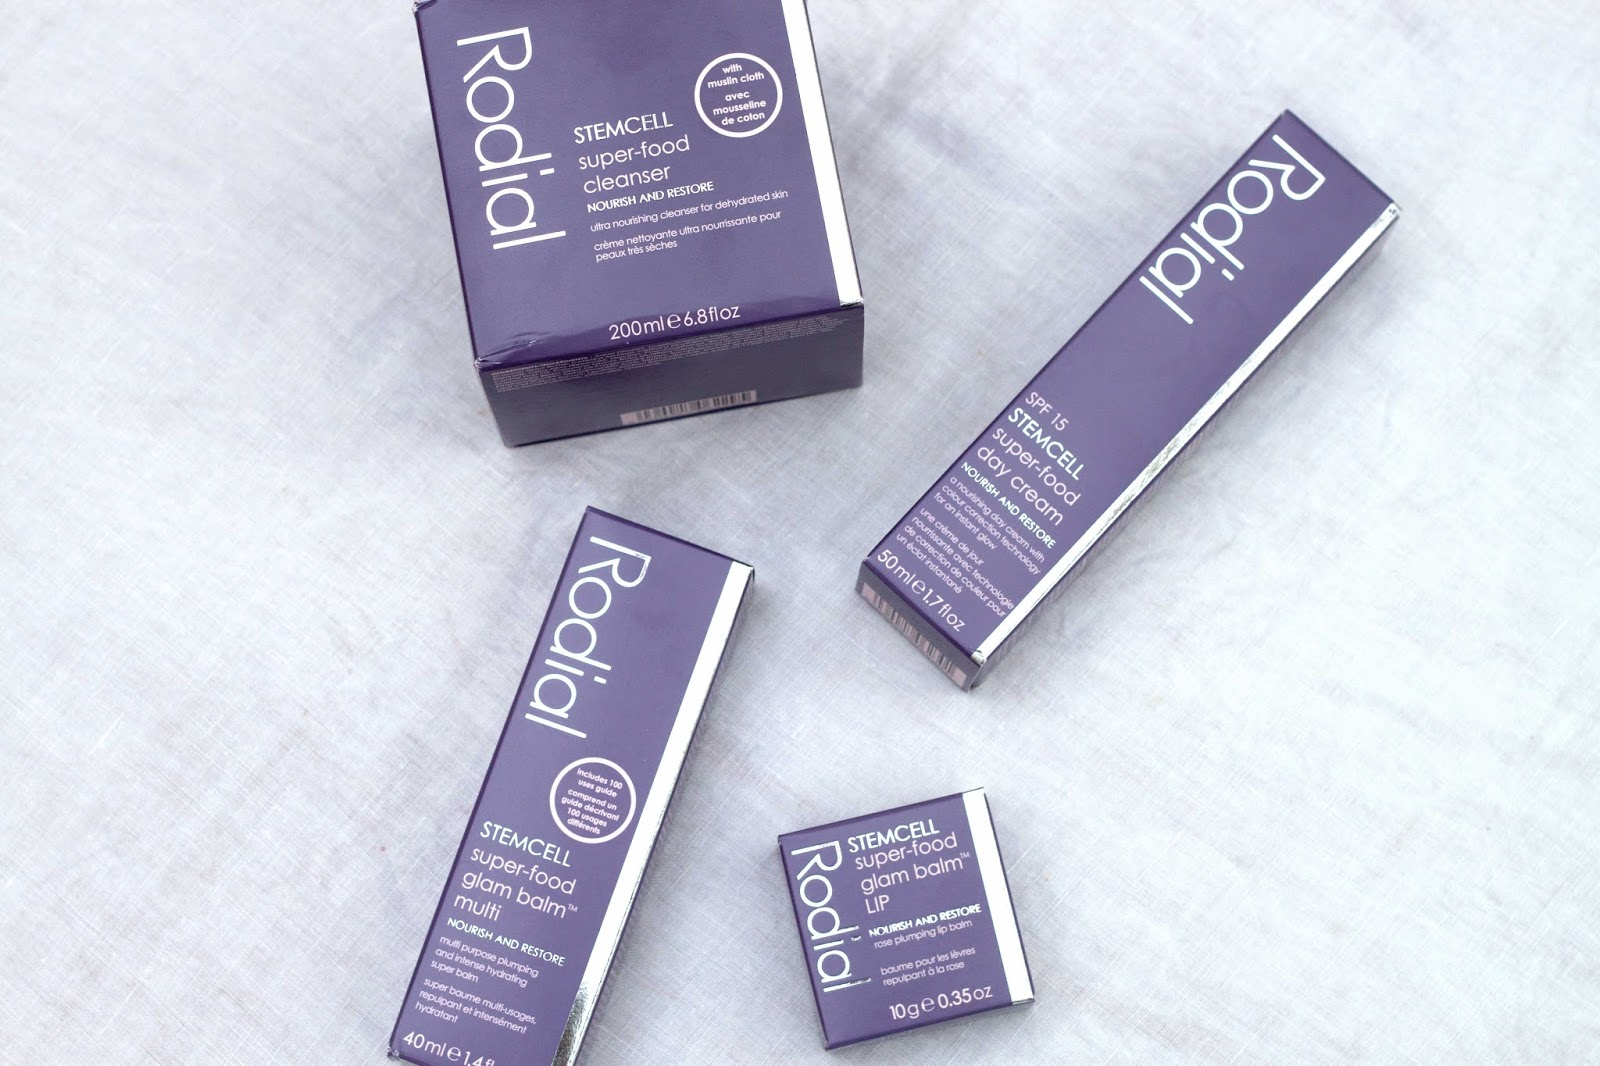 BEAUTY : THE RODIAL STEMCELL SUPERFOOD RANGE